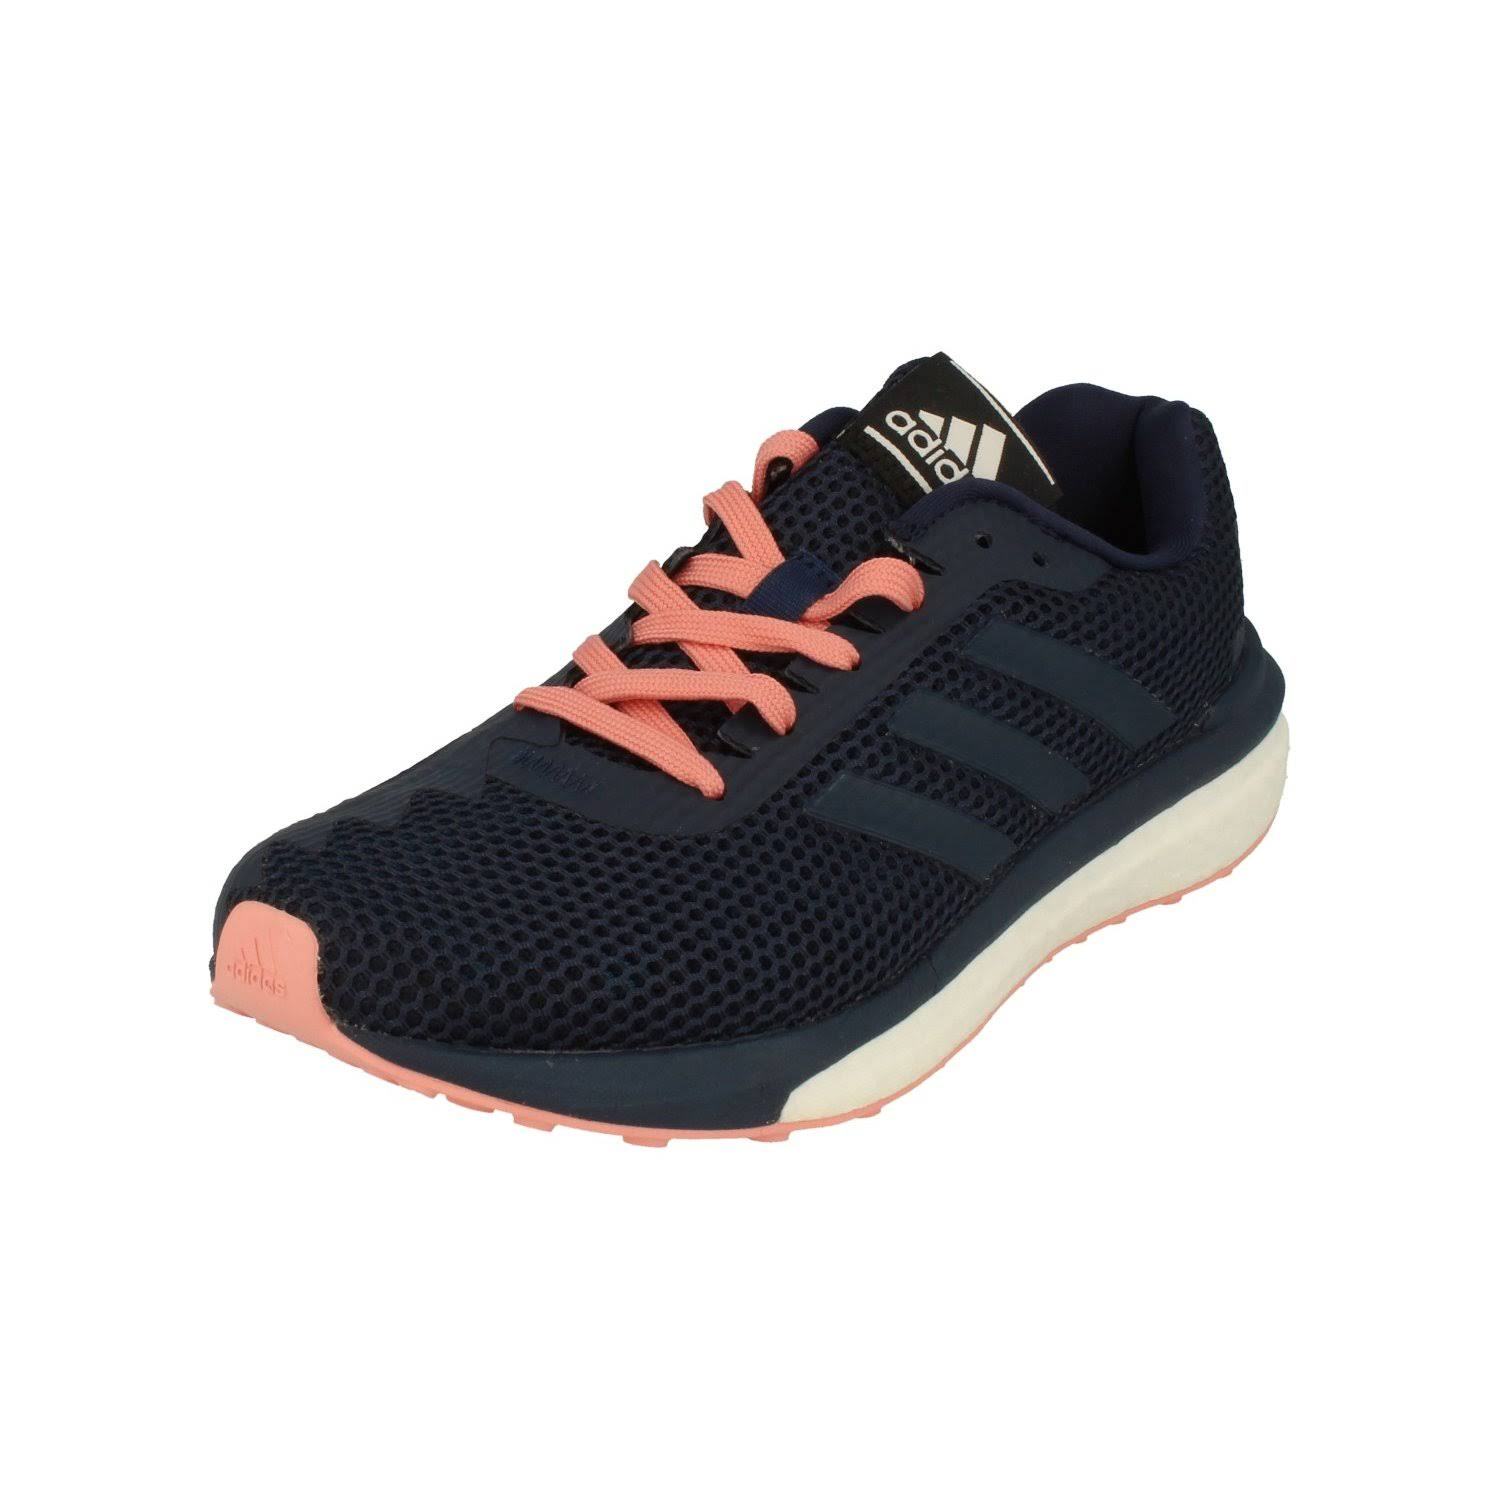 (5.5) Adidas Womens Vengeful Boost Running Trainers